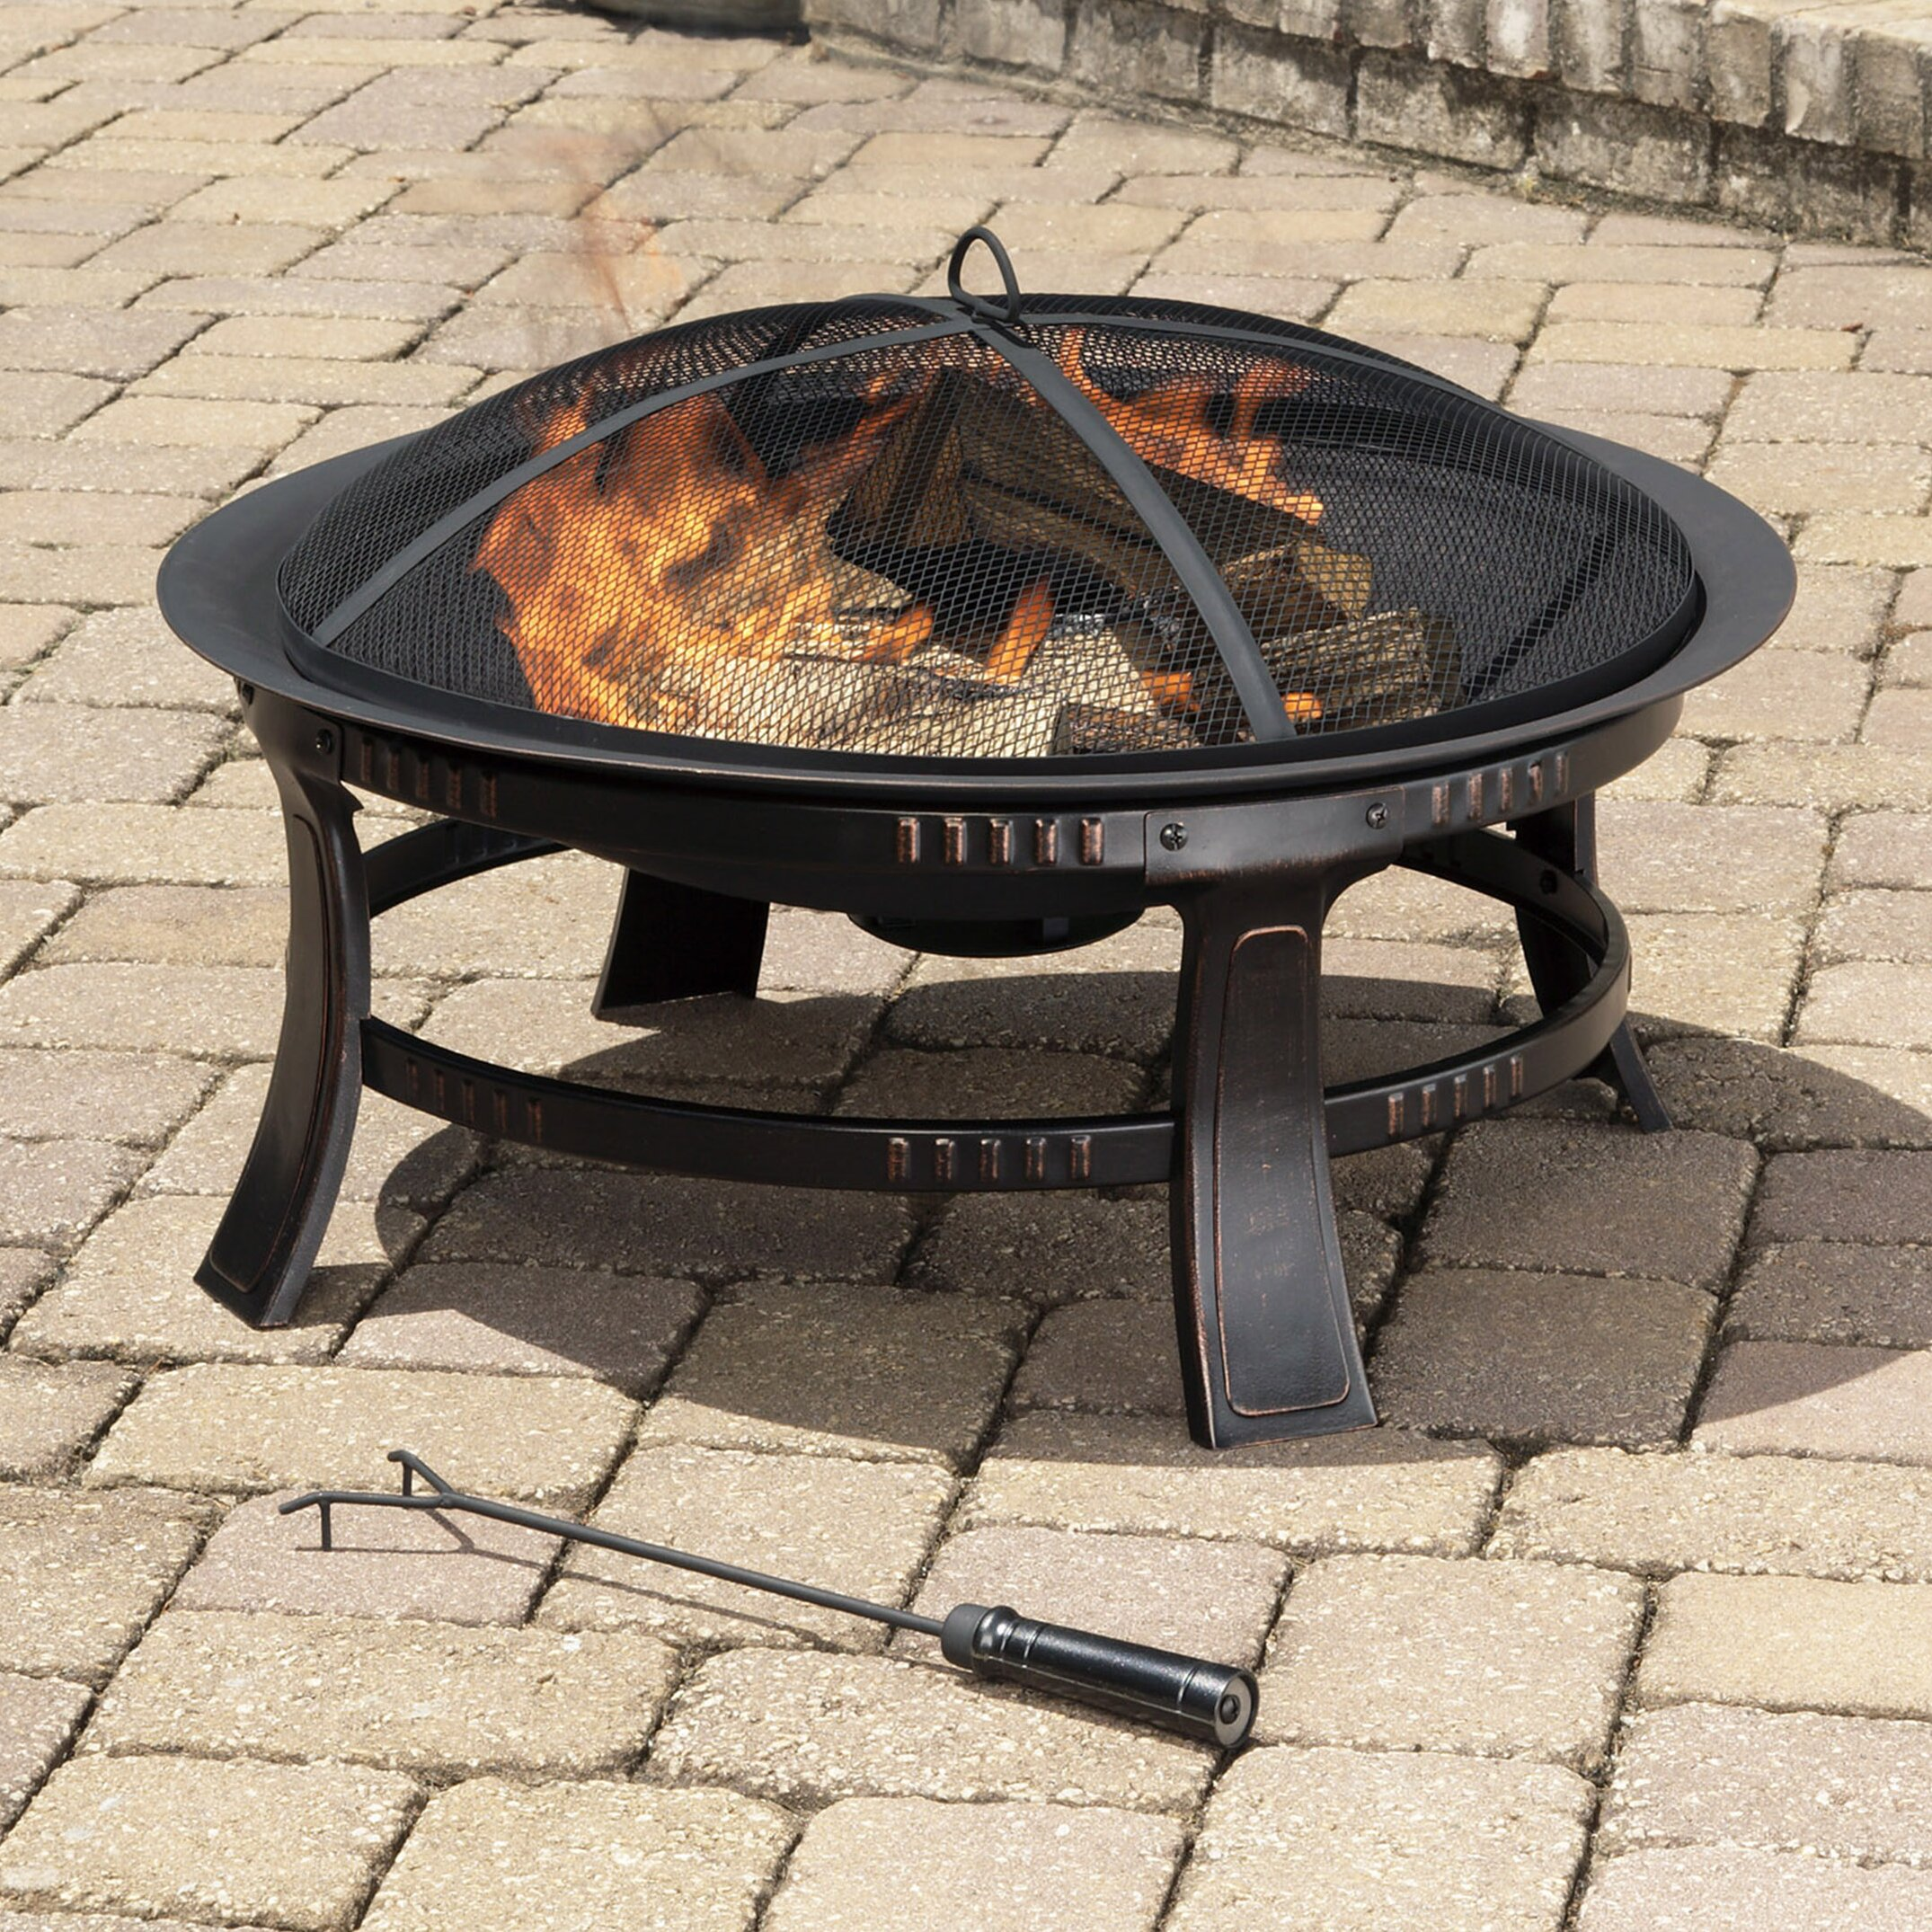 Pleasant Hearth Brant Wood Burning Circular Fire Pit In